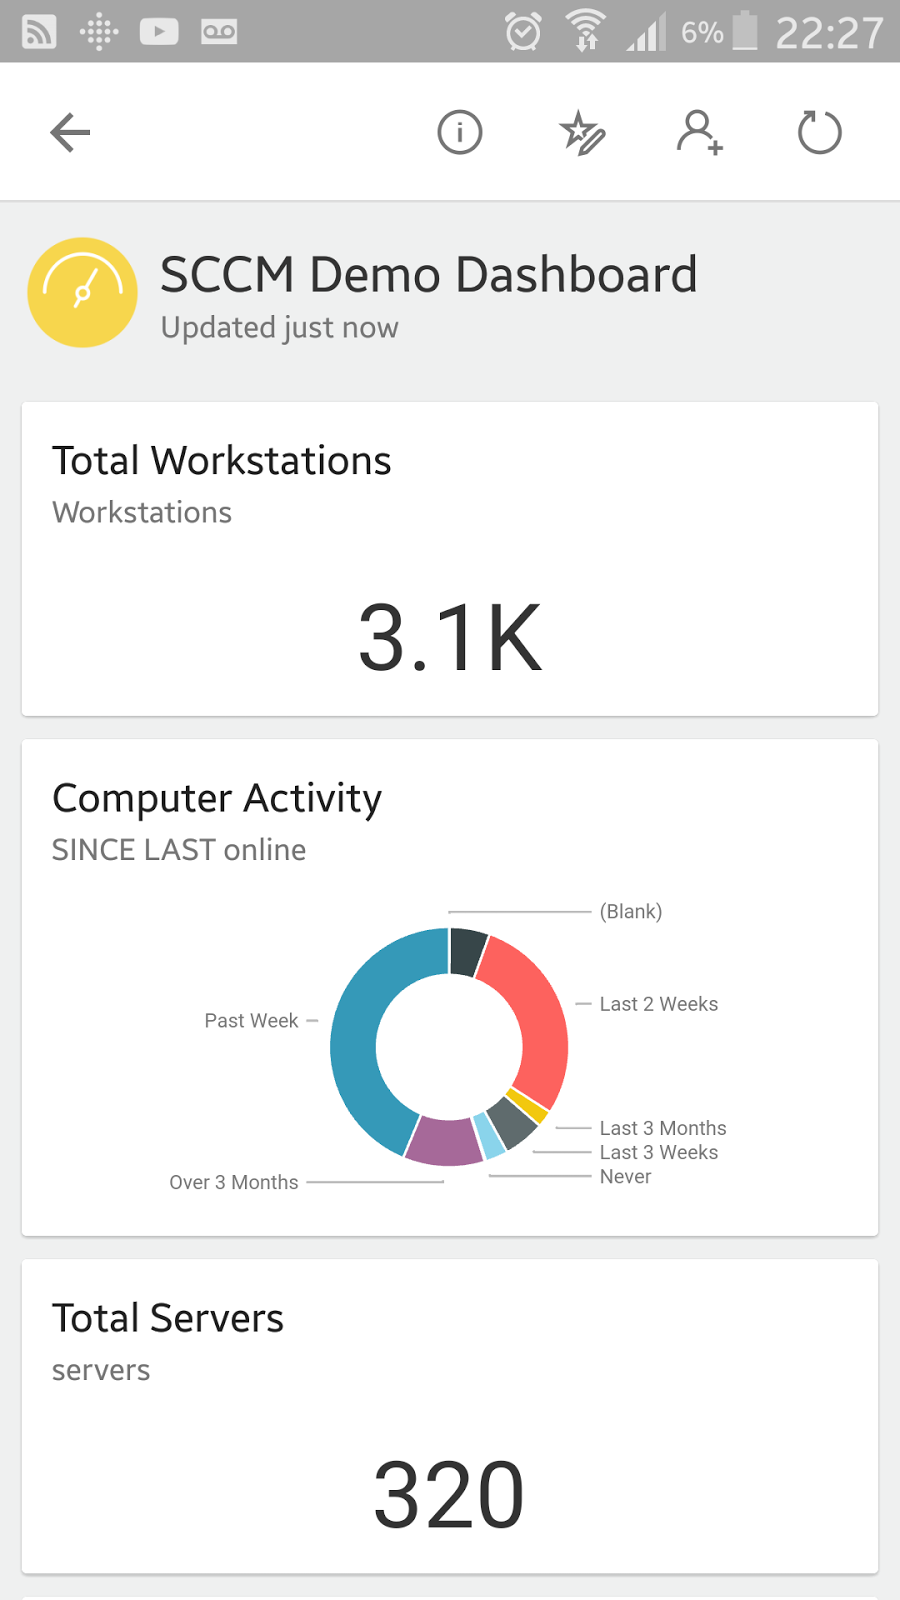 Dashboard Reporting for Power BI and SCCM Explained | PowerON - IT